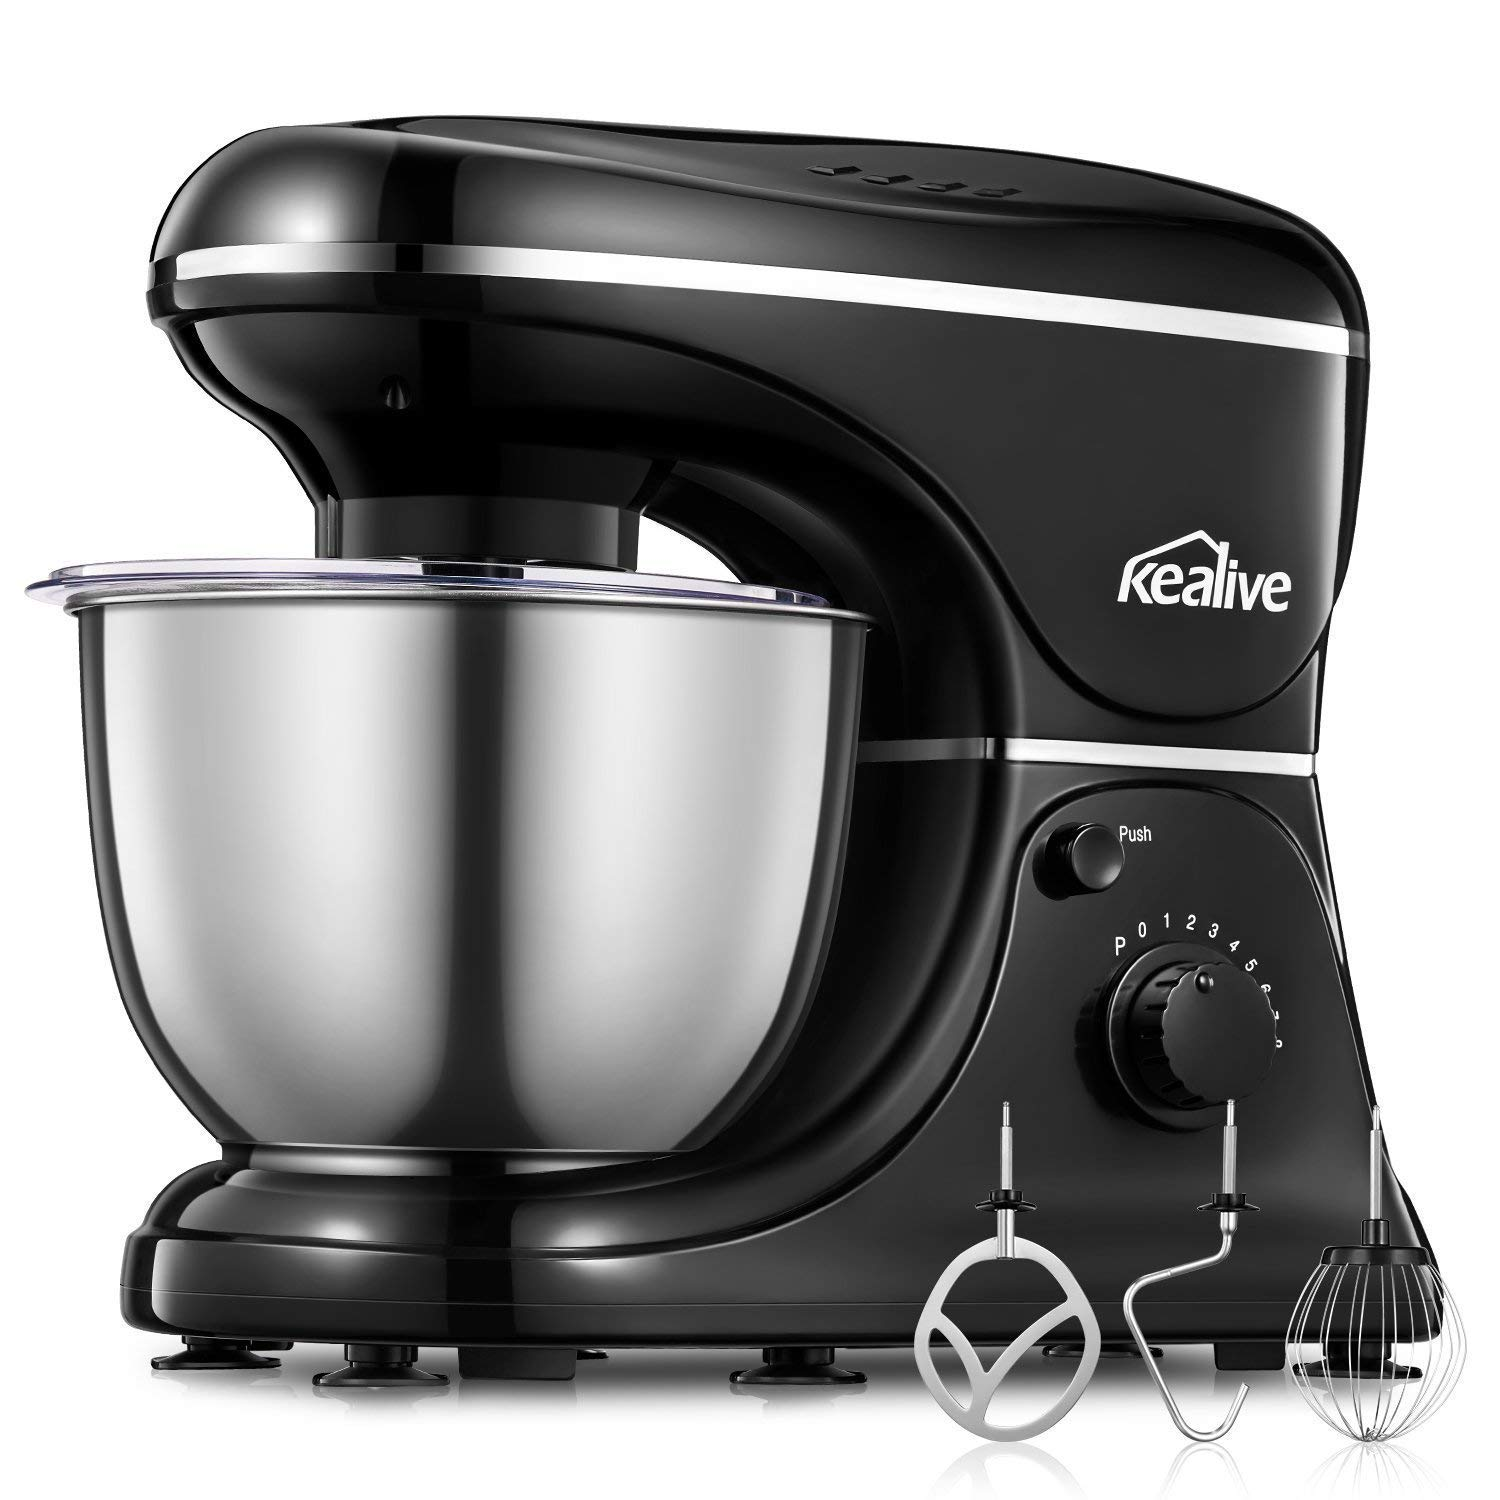 Kealive Stand Mixer, 8 Speed 700 Watt Kithchen Mixer with 5-Quart Stainless Steel Bowl, Dough Hooks, Whisk, Beater, Pouring Shield, Dough Mixer, Black LB9001B